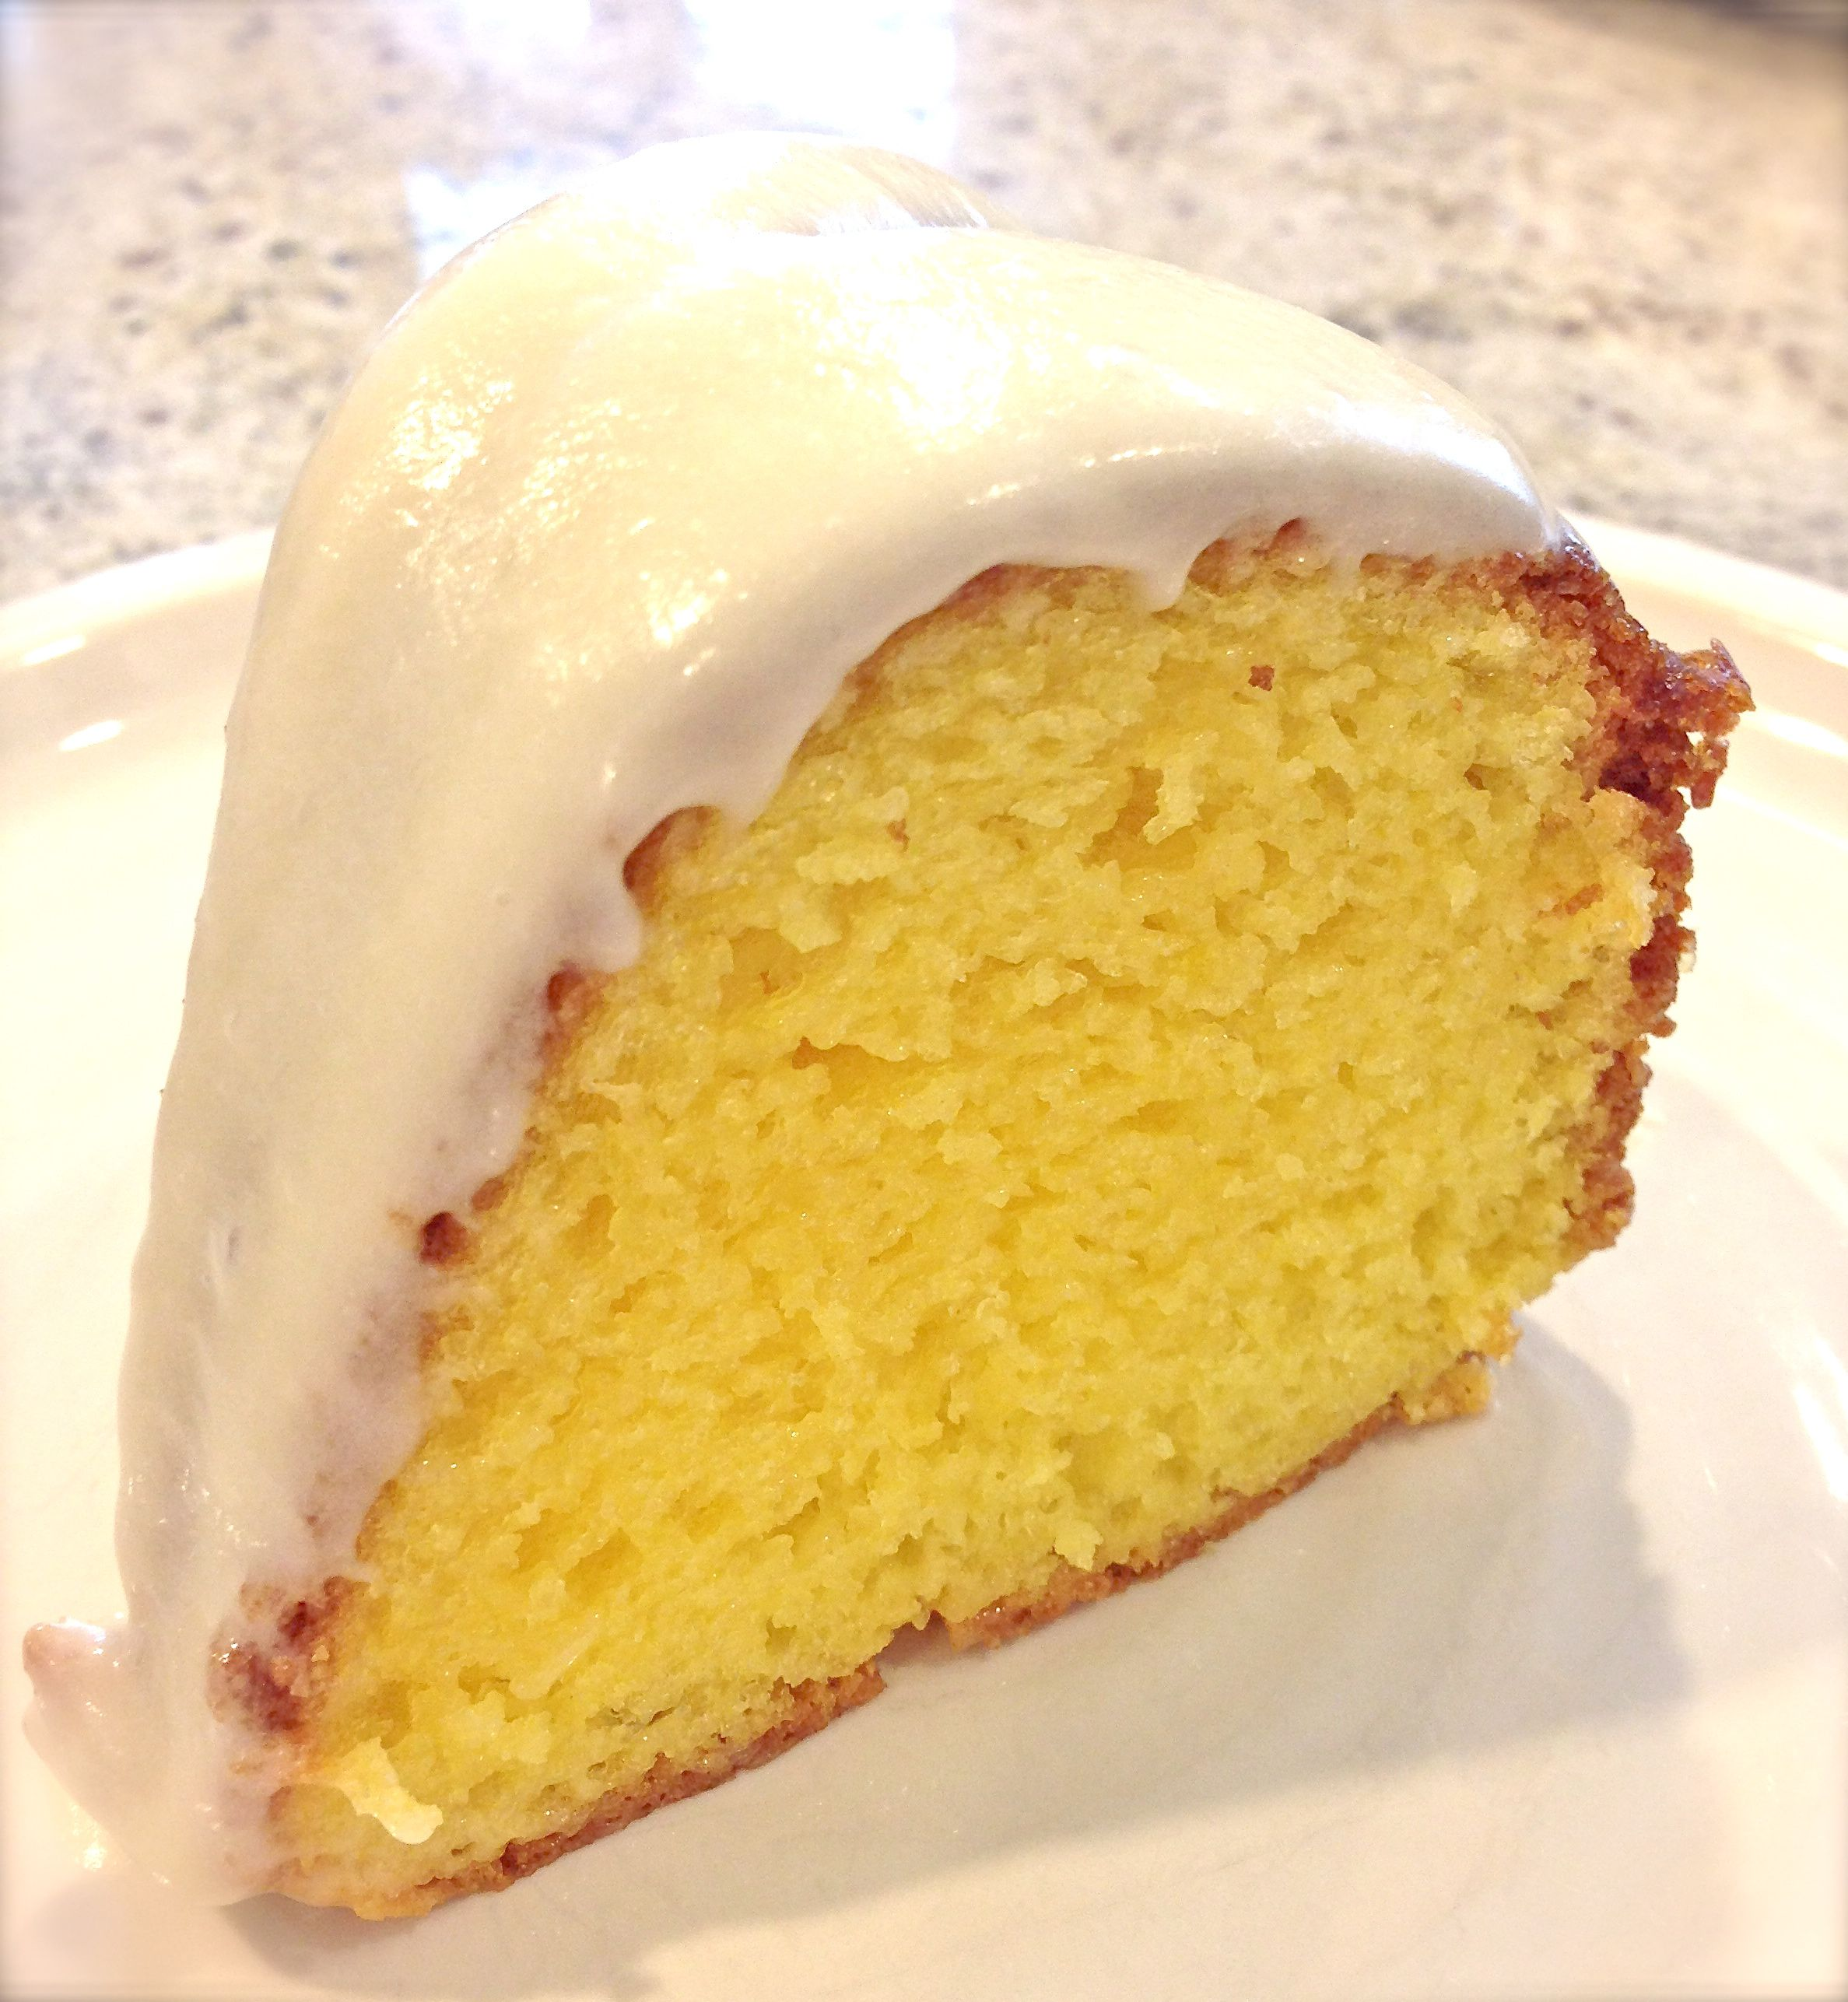 Lemon Bundt Cake with Cream Cheese Frosting | Food ...